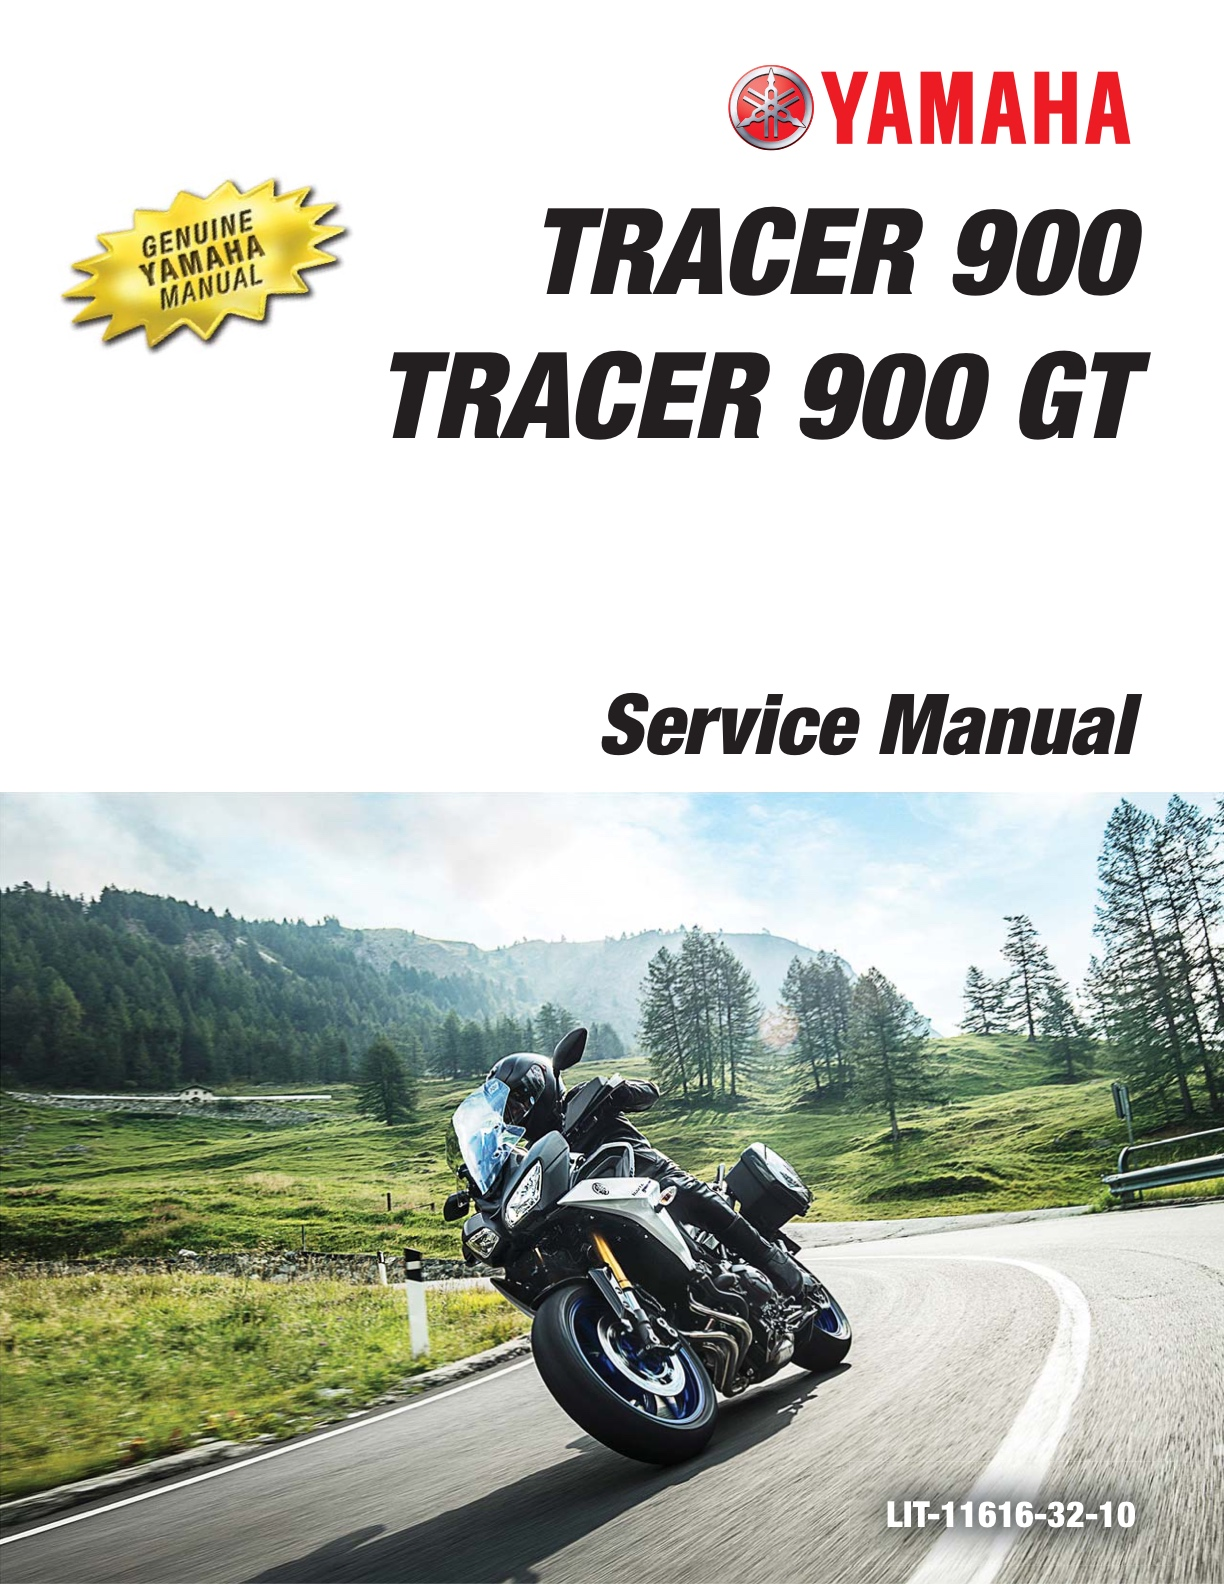 Yamaha 2019 2020 Tracer 900 Tracer 900 Gt Supersport Touring Service Manual